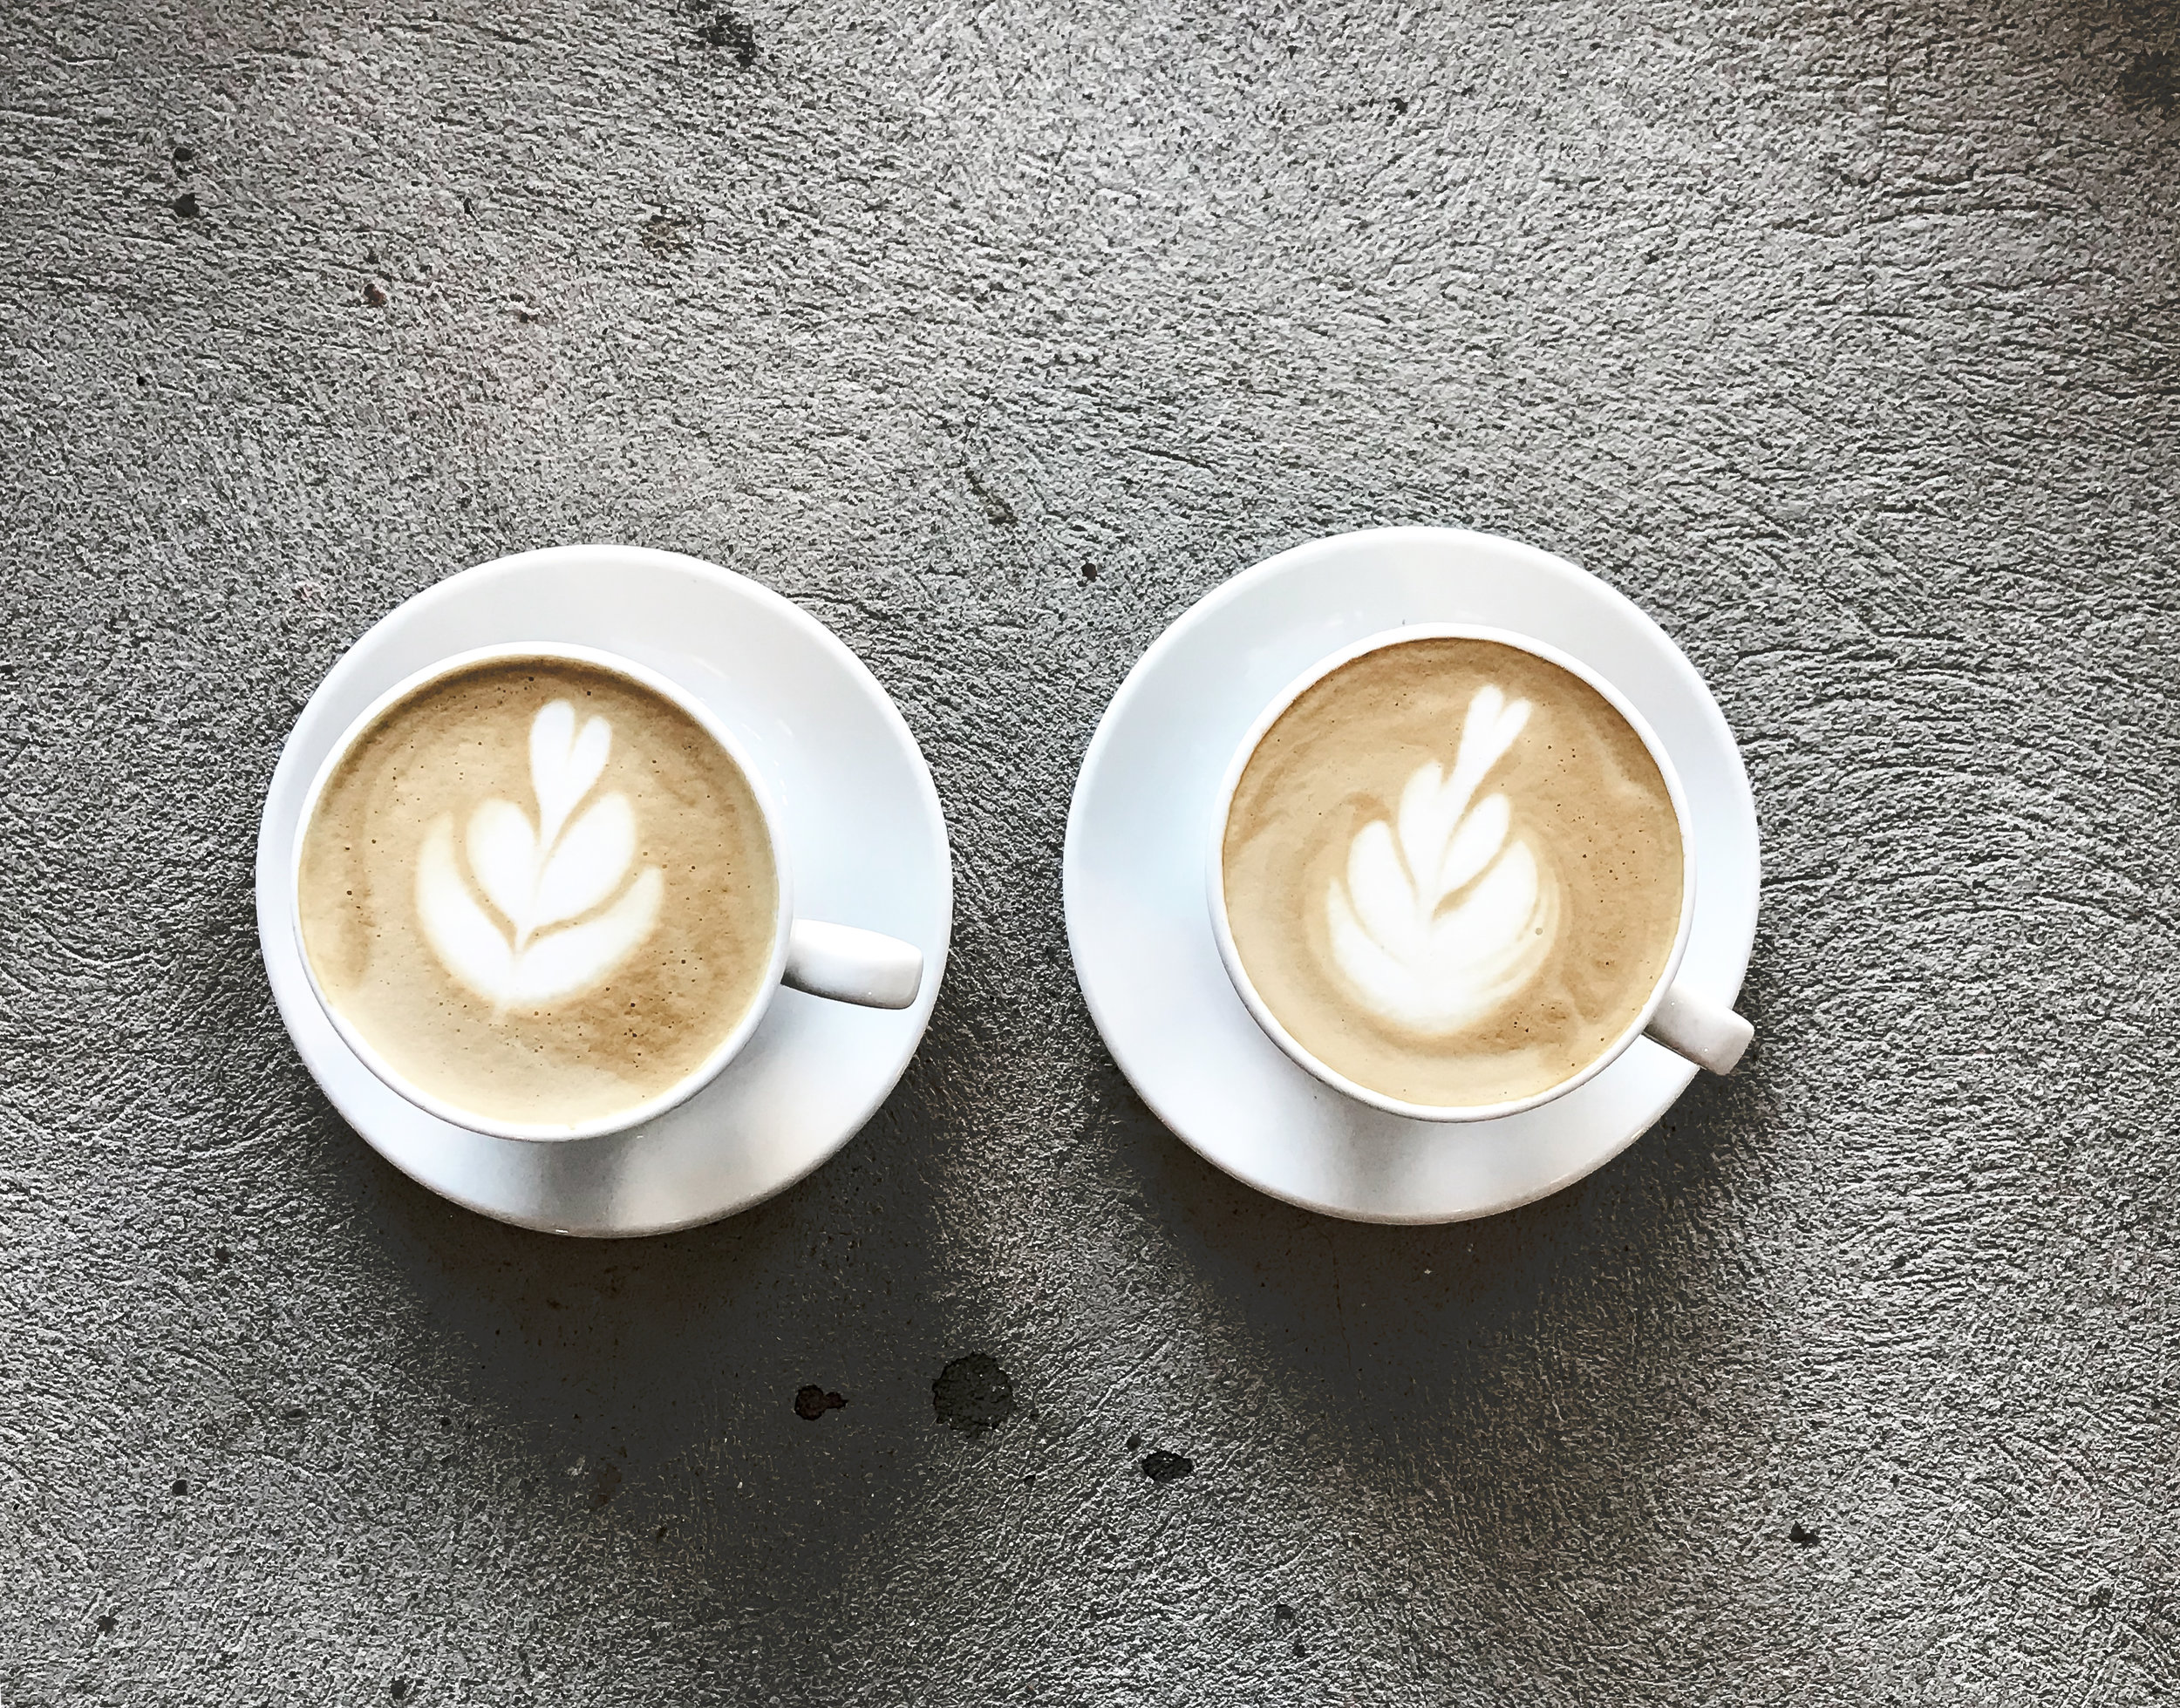 two coffees living their last moments -